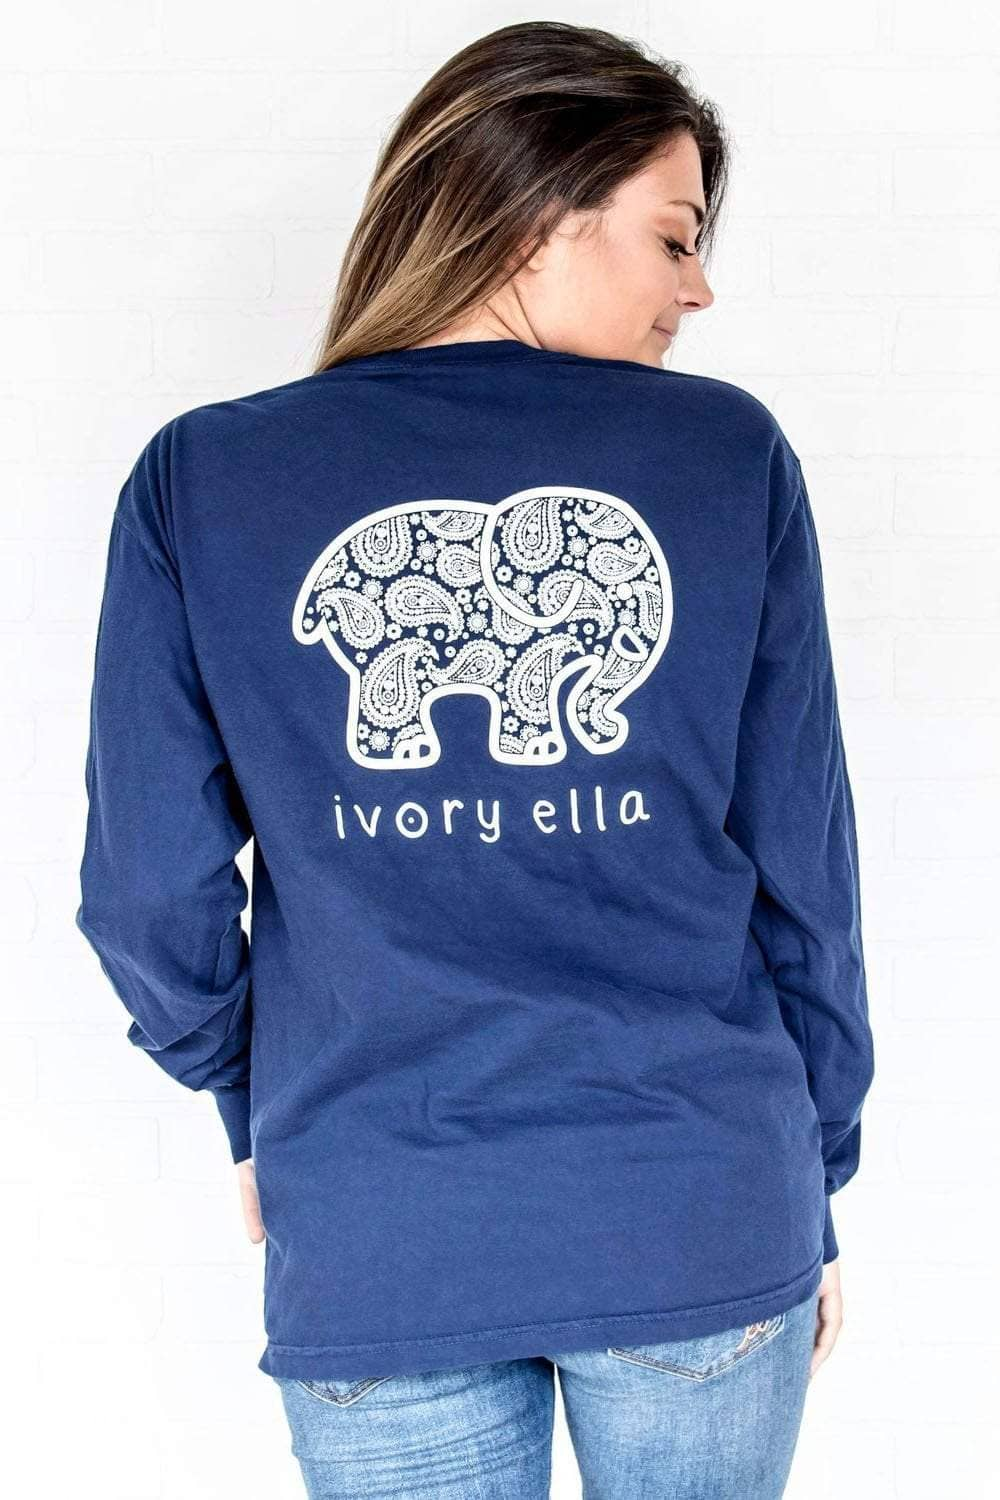 Ivory Ella Women's Long Sleeve Shirts Navy / S Classic Fit Dark Navy Inverse Paisley Tee